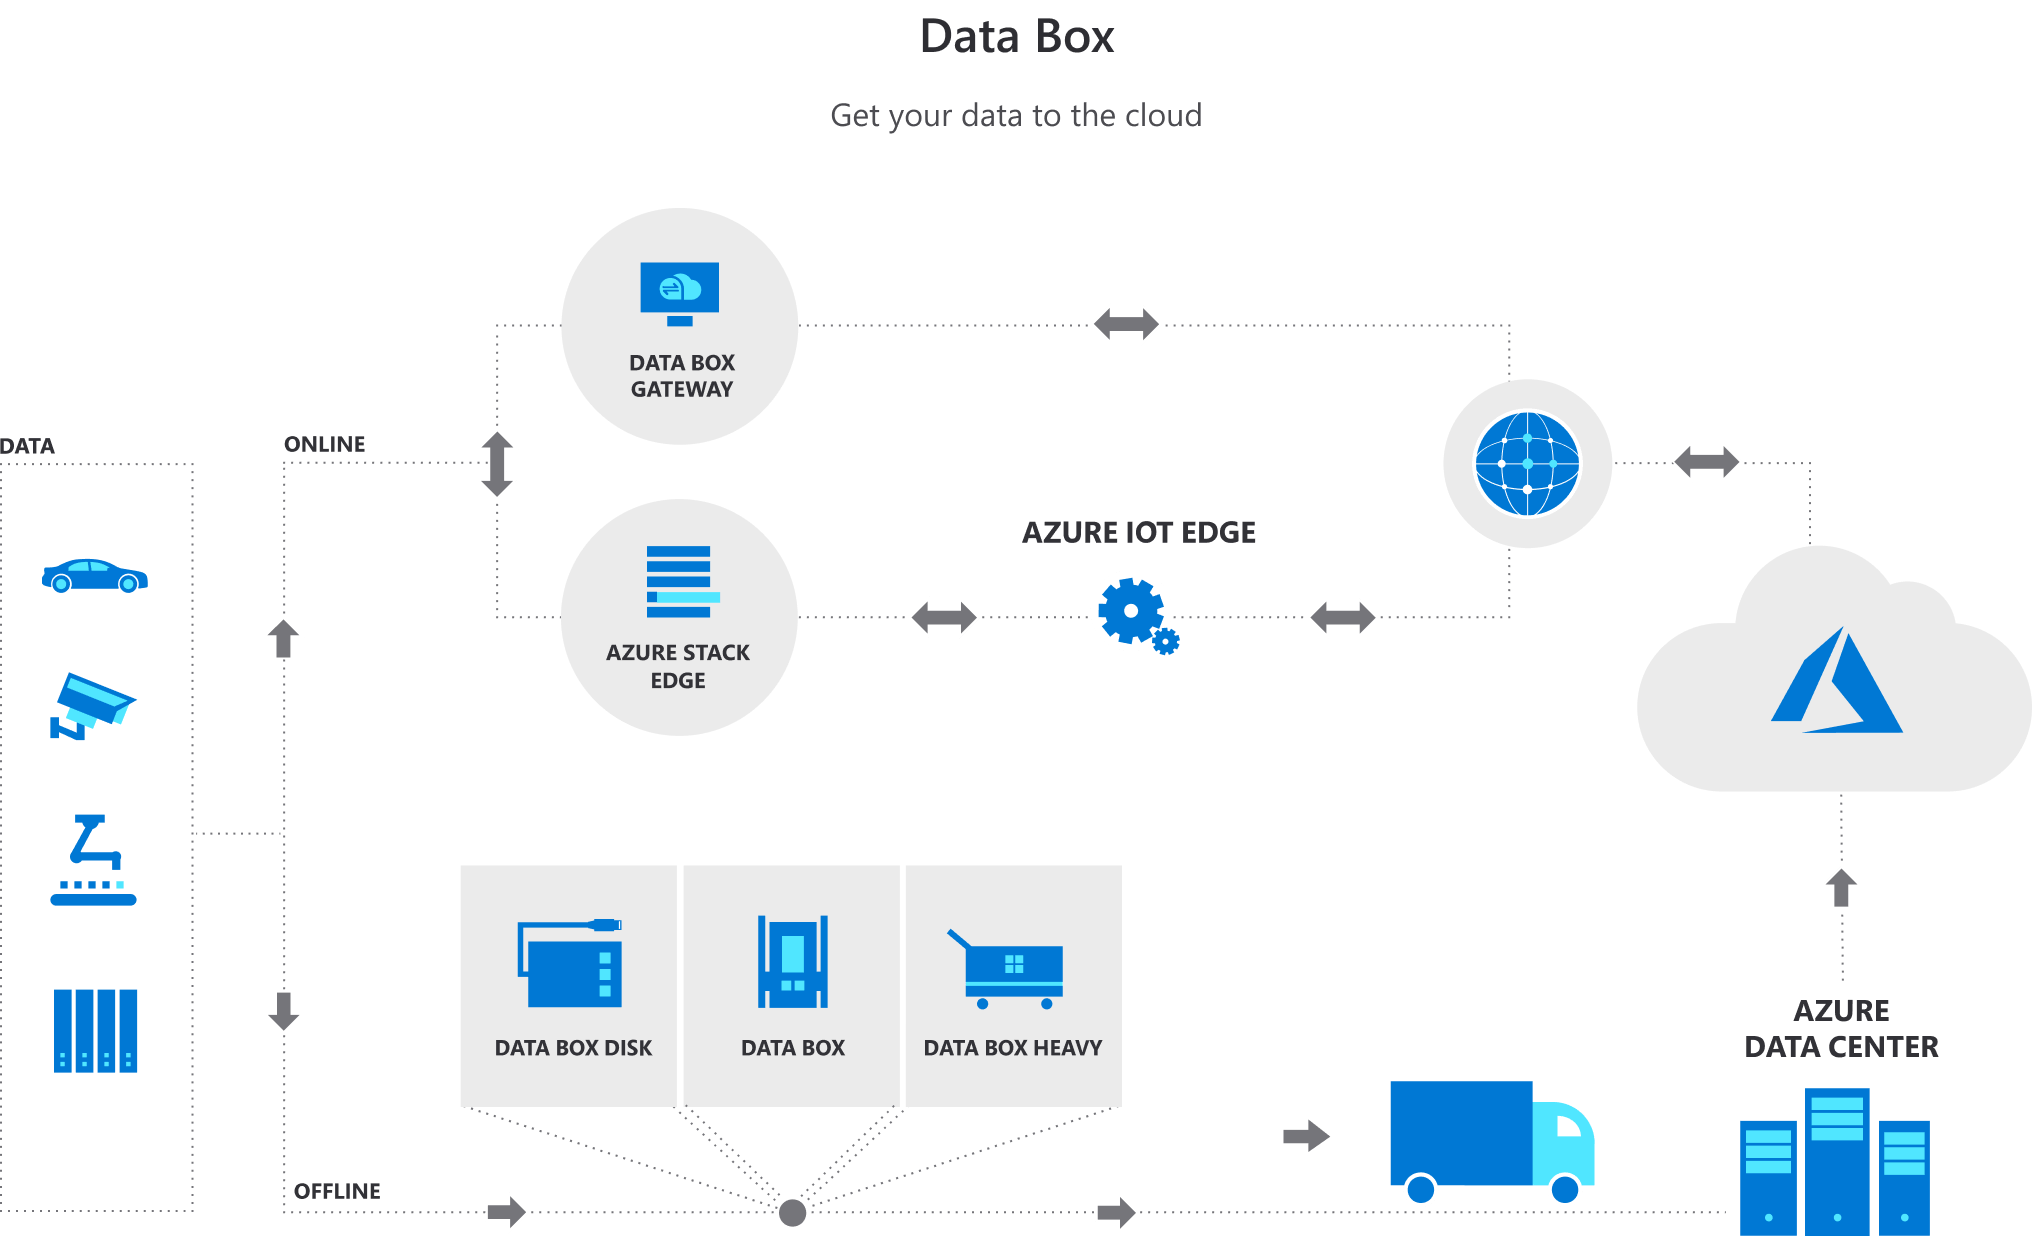 Data Box - 使用 Azure Stack Edge 将数据获取到云